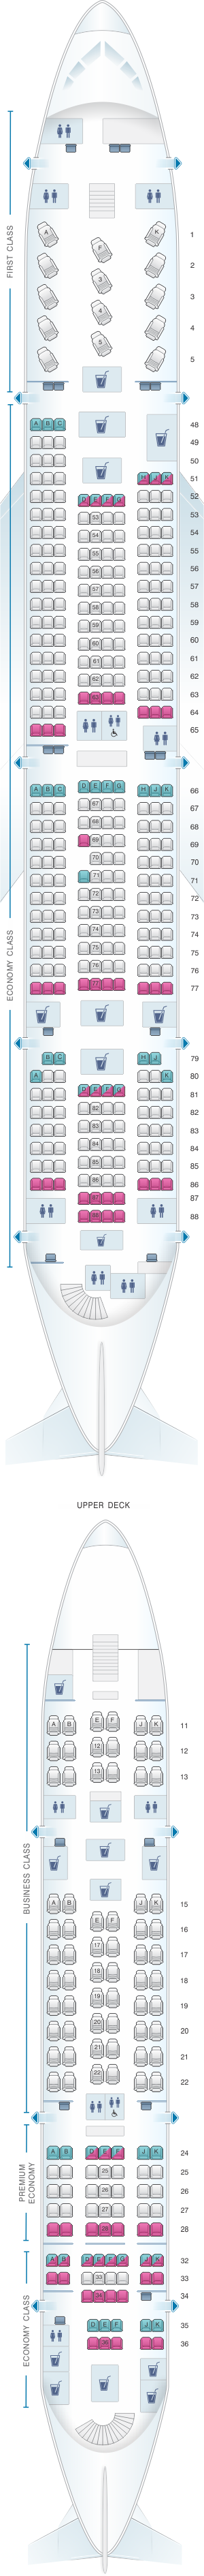 Seat map for Qantas Airways Airbus A380 800